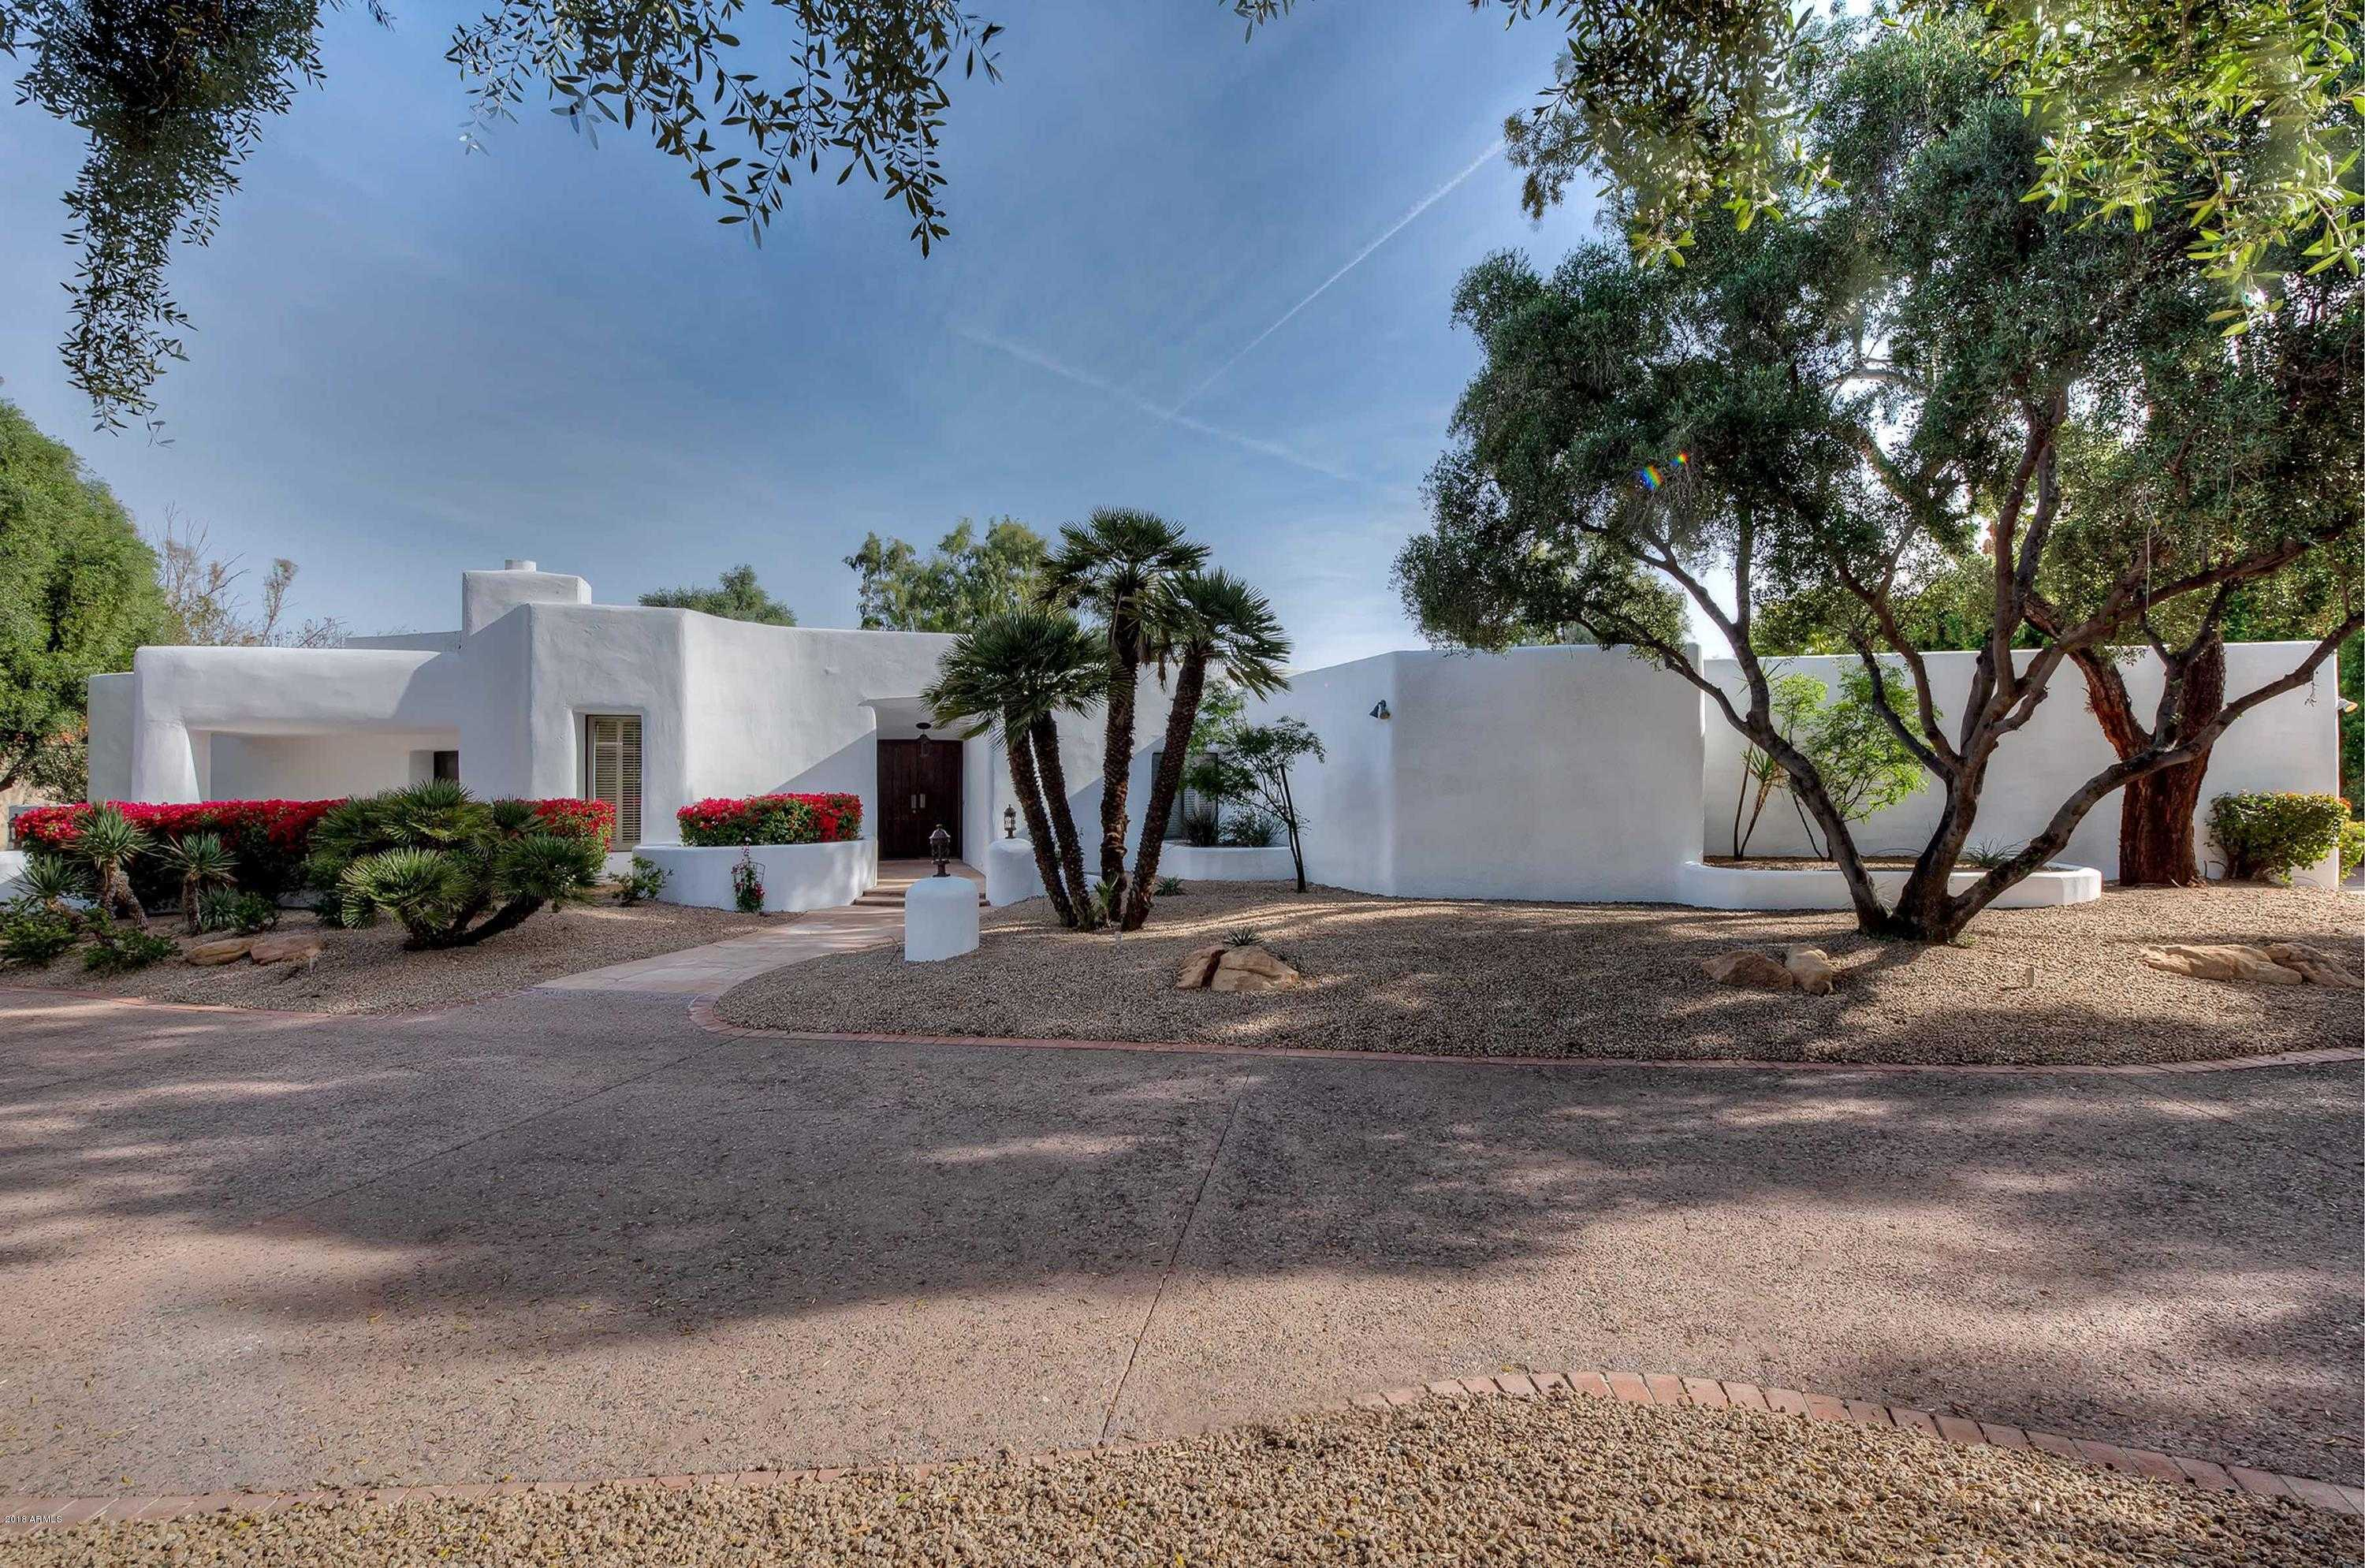 $1,995,000 - 5Br/6Ba - Home for Sale in Finisterre Lot 1-93, Paradise Valley